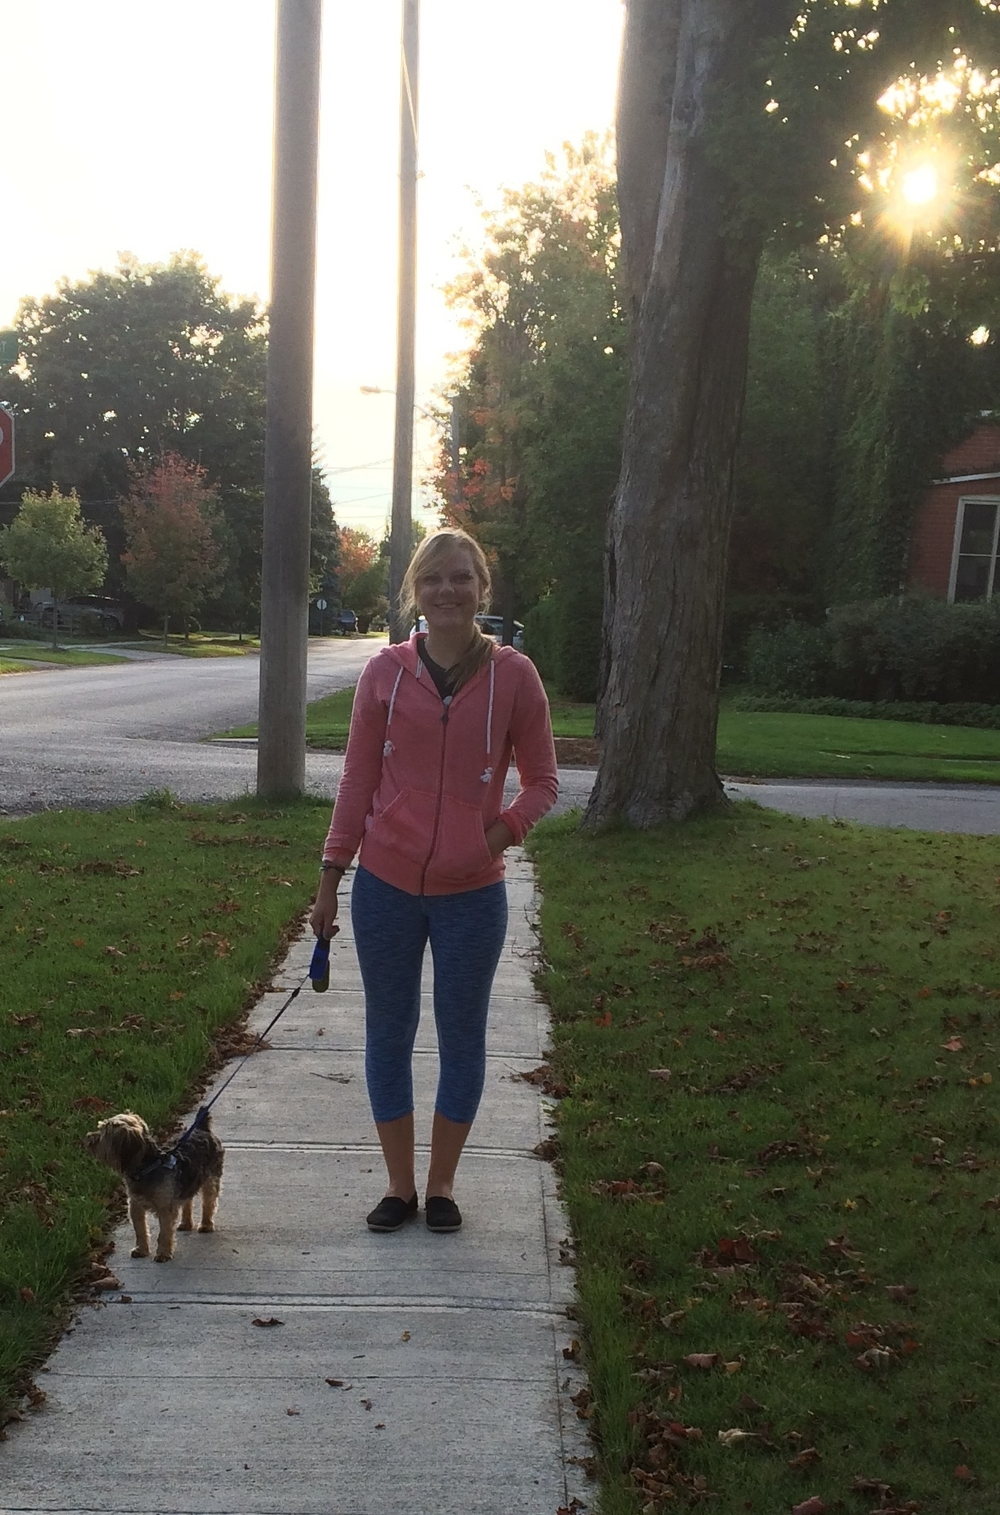 Natalia and Arnie join the walk in Stouffville, ON